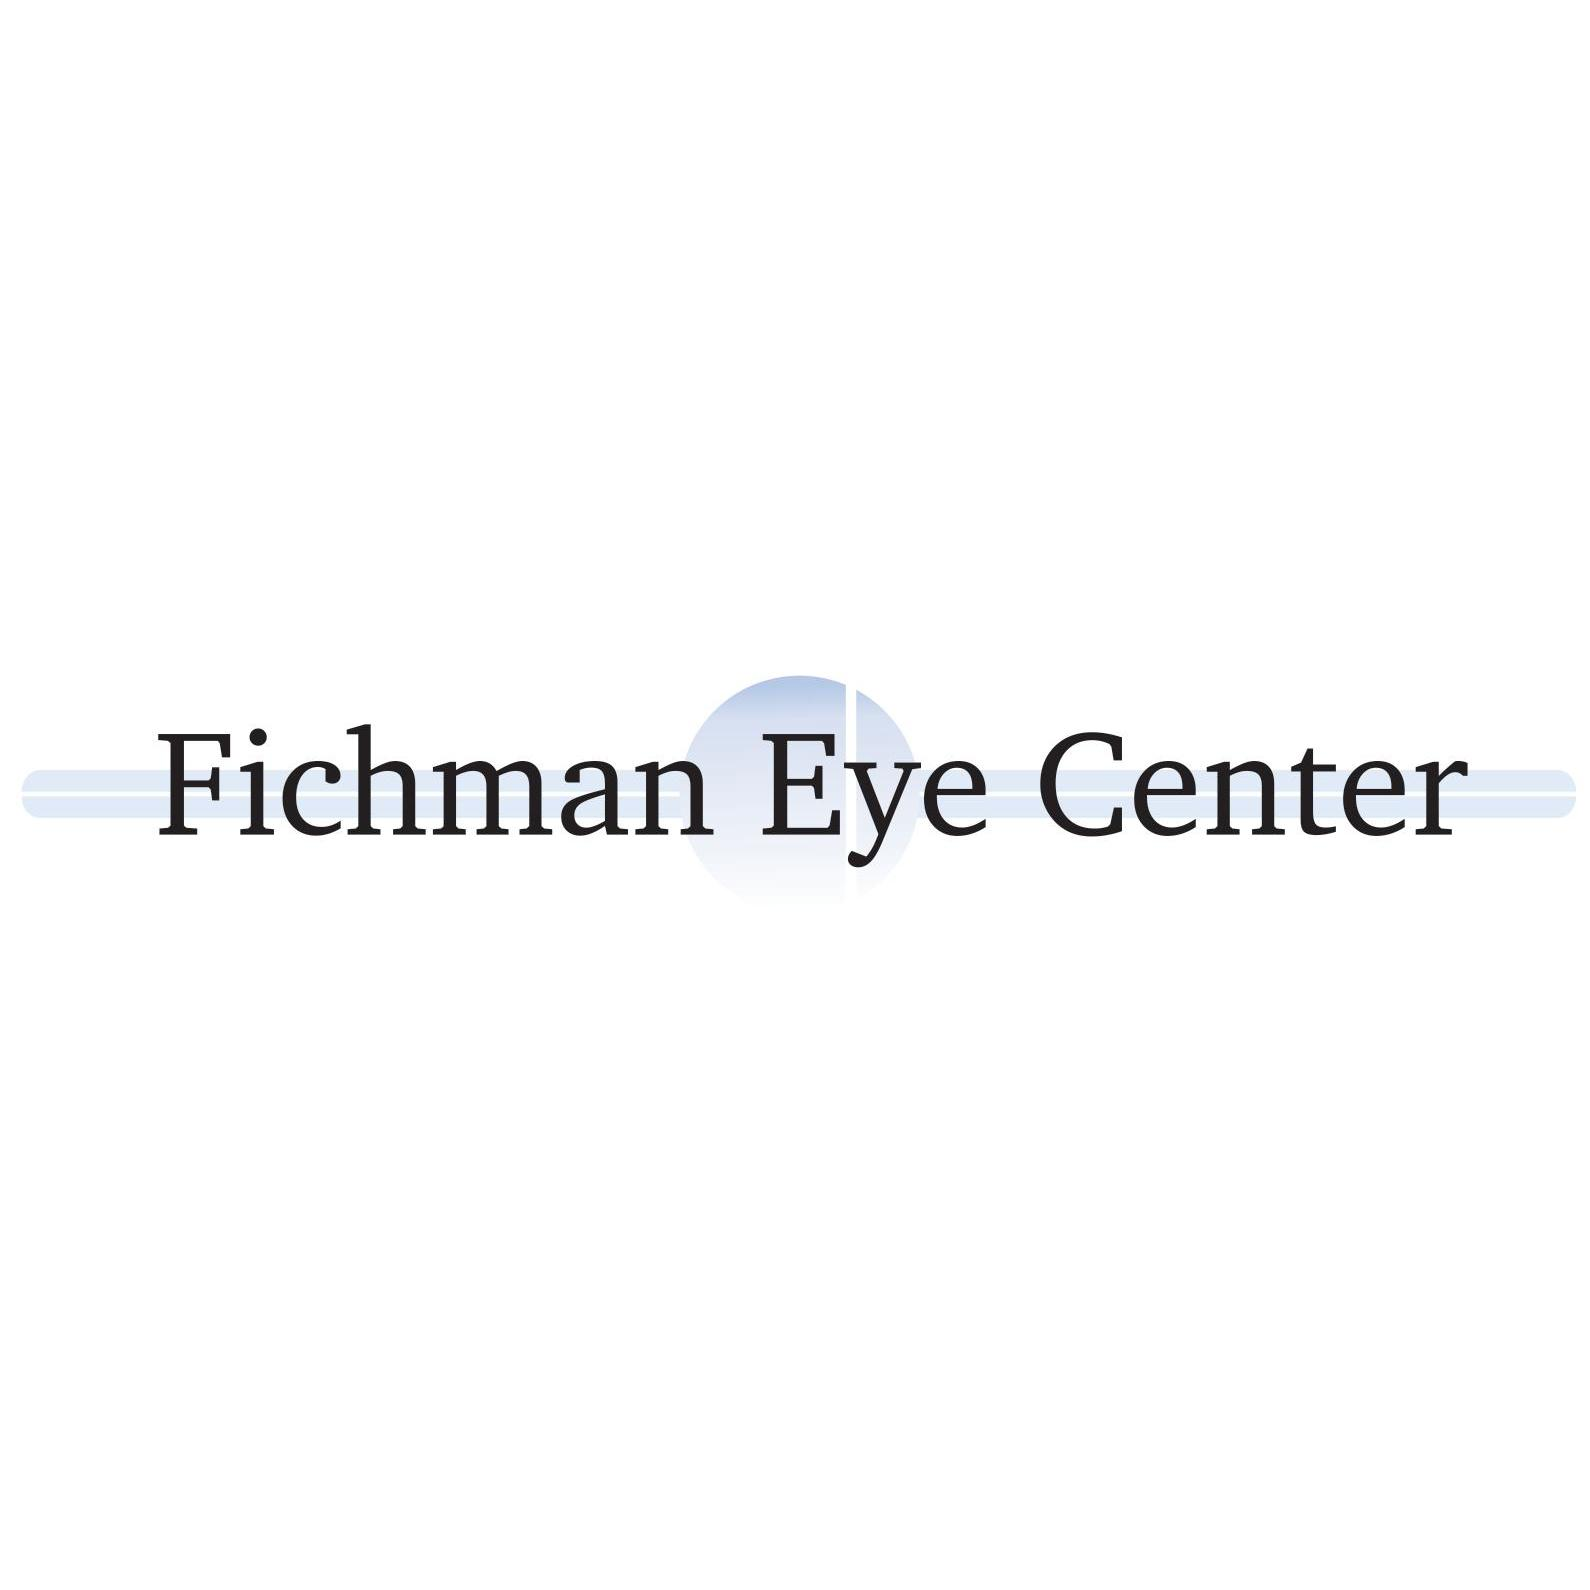 Fichman Eye Center